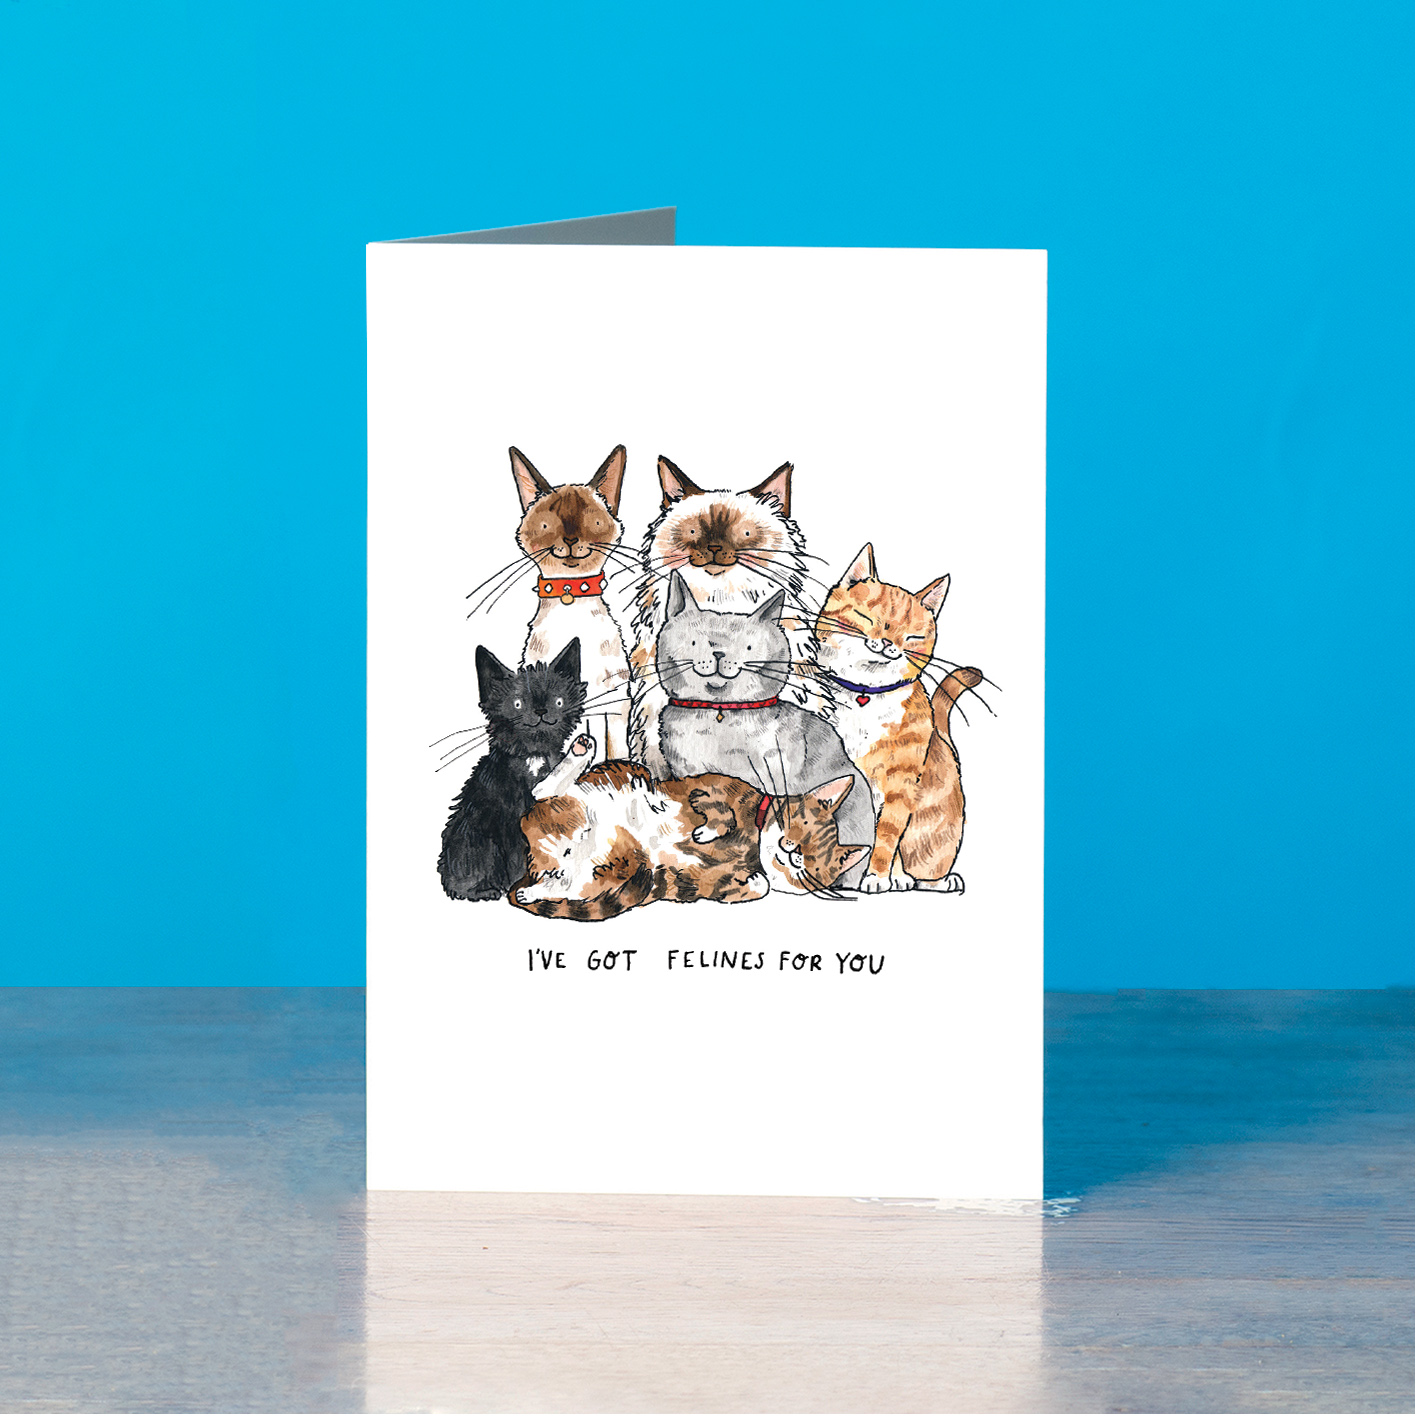 Felines-for-you_-Cat-greetings-card-for-anniversaries_SM72_OT